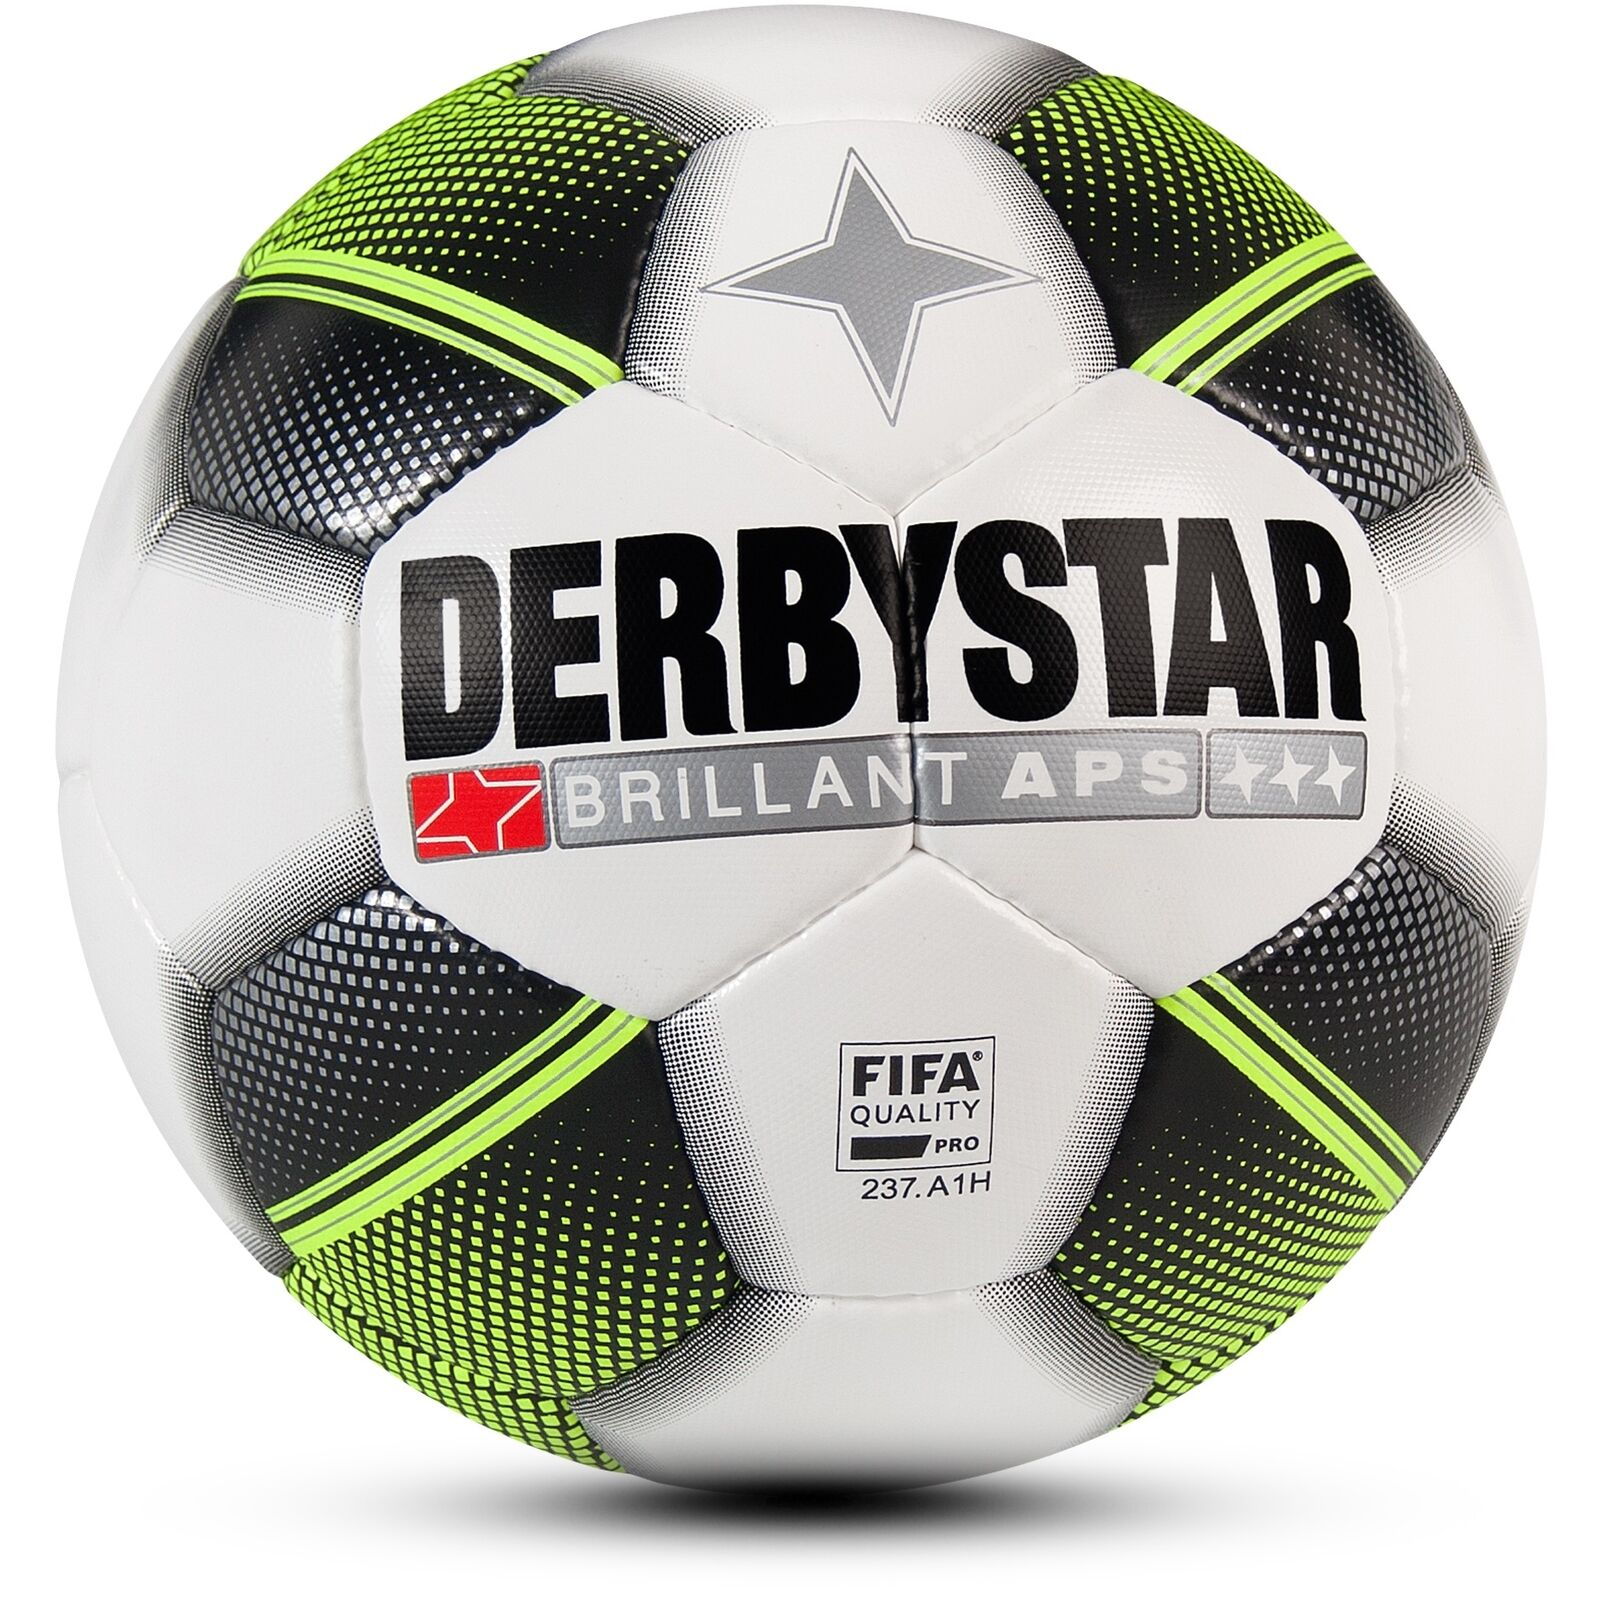 Derbystar Brilliant APS - Art.Nr. 1730500125